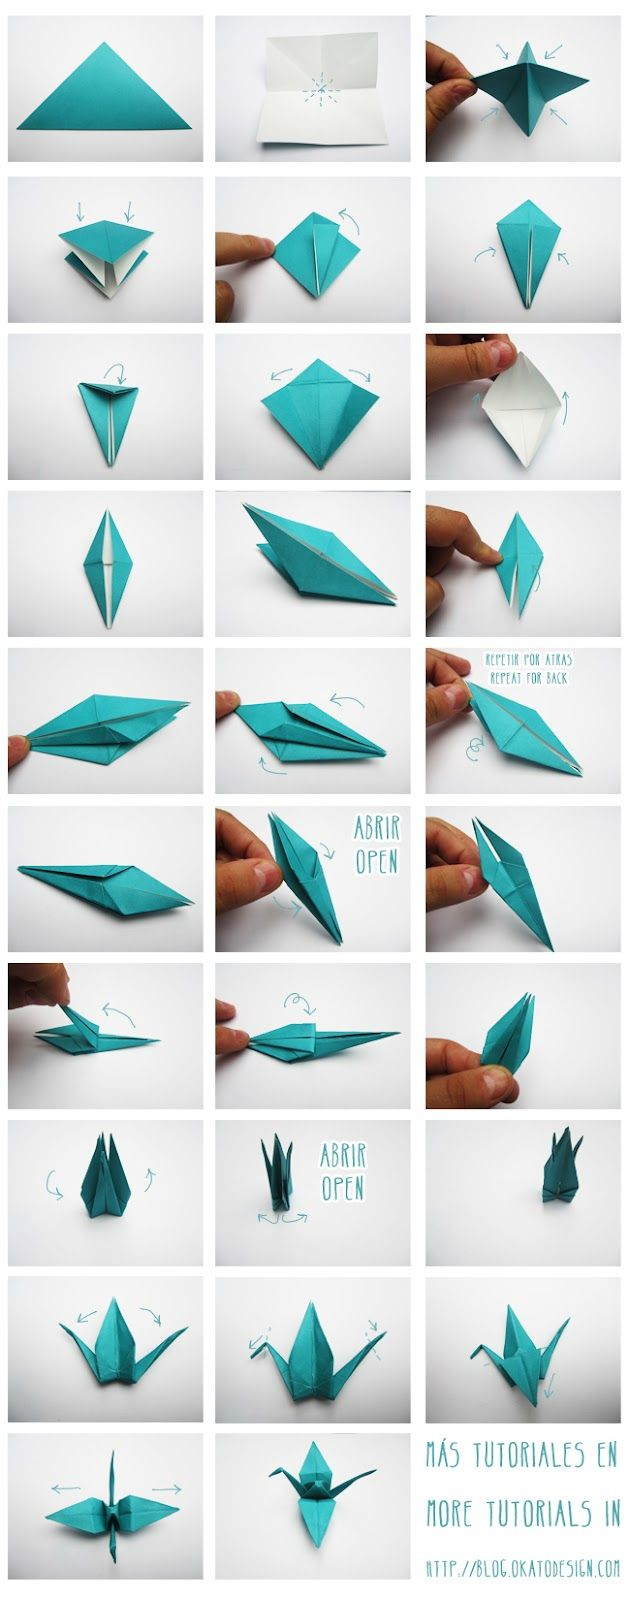 Okato World: Grullas de Origami